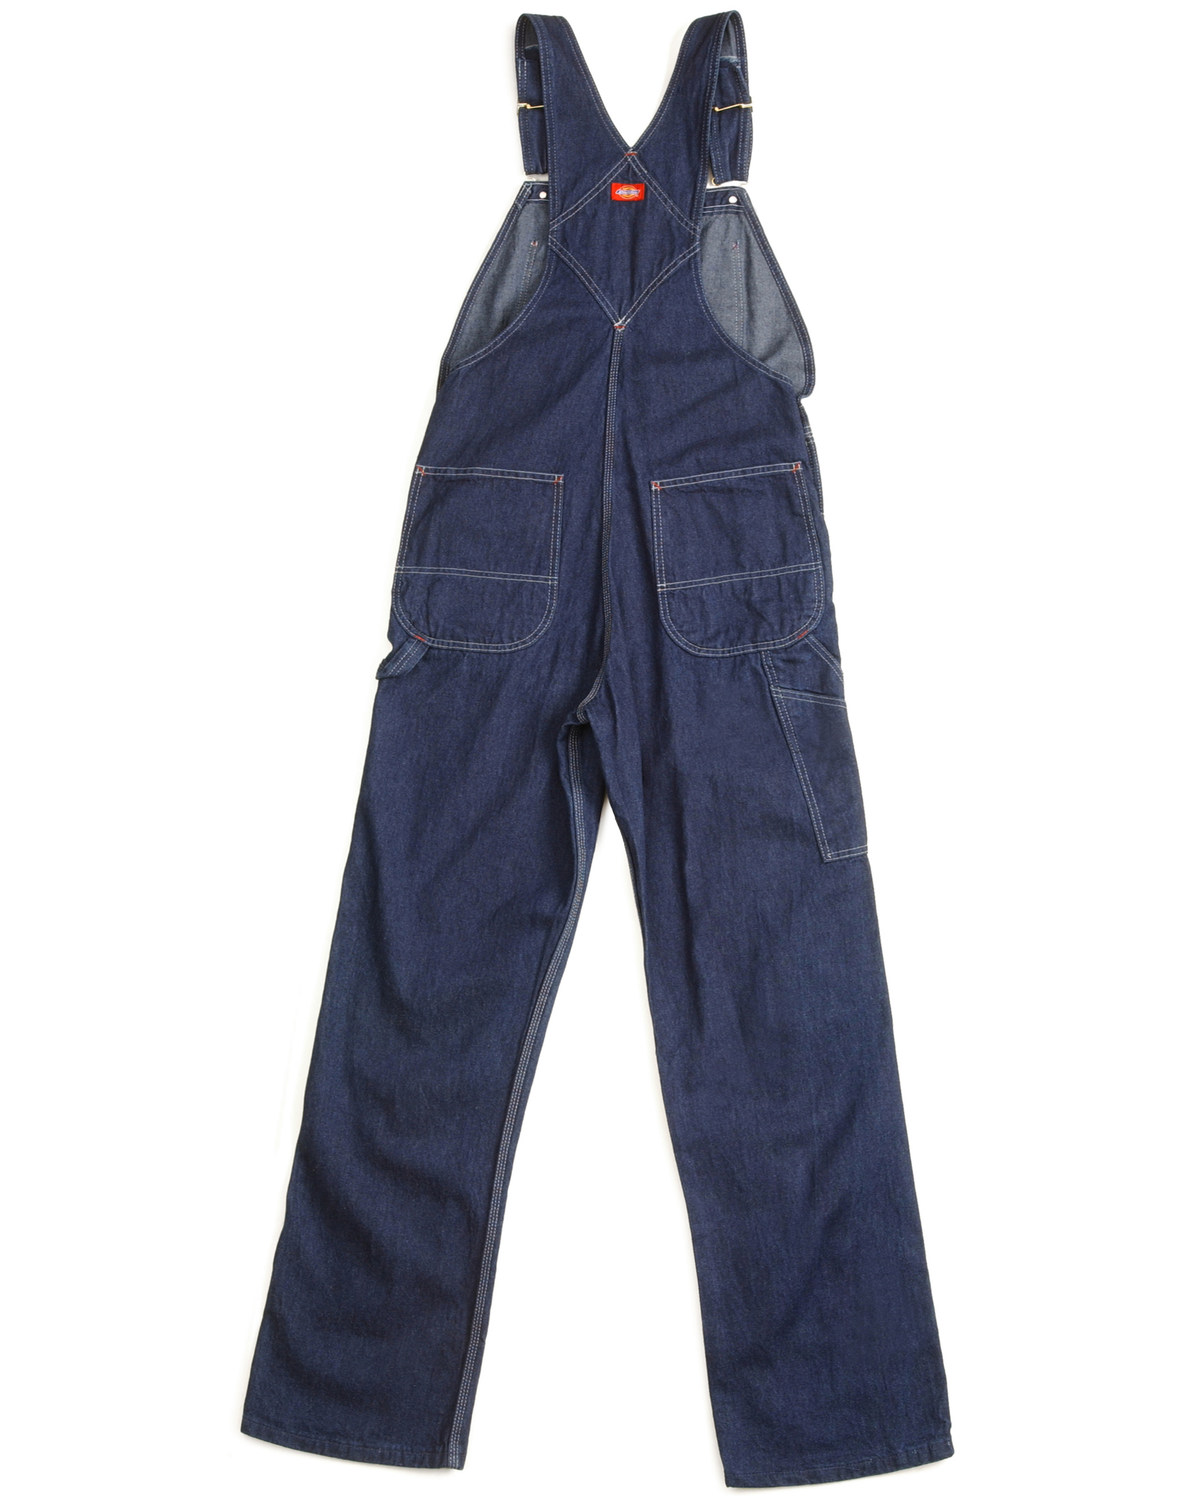 big selection of 2019 hot-selling real online for sale Mens Overalls Big And Tall | RLDM